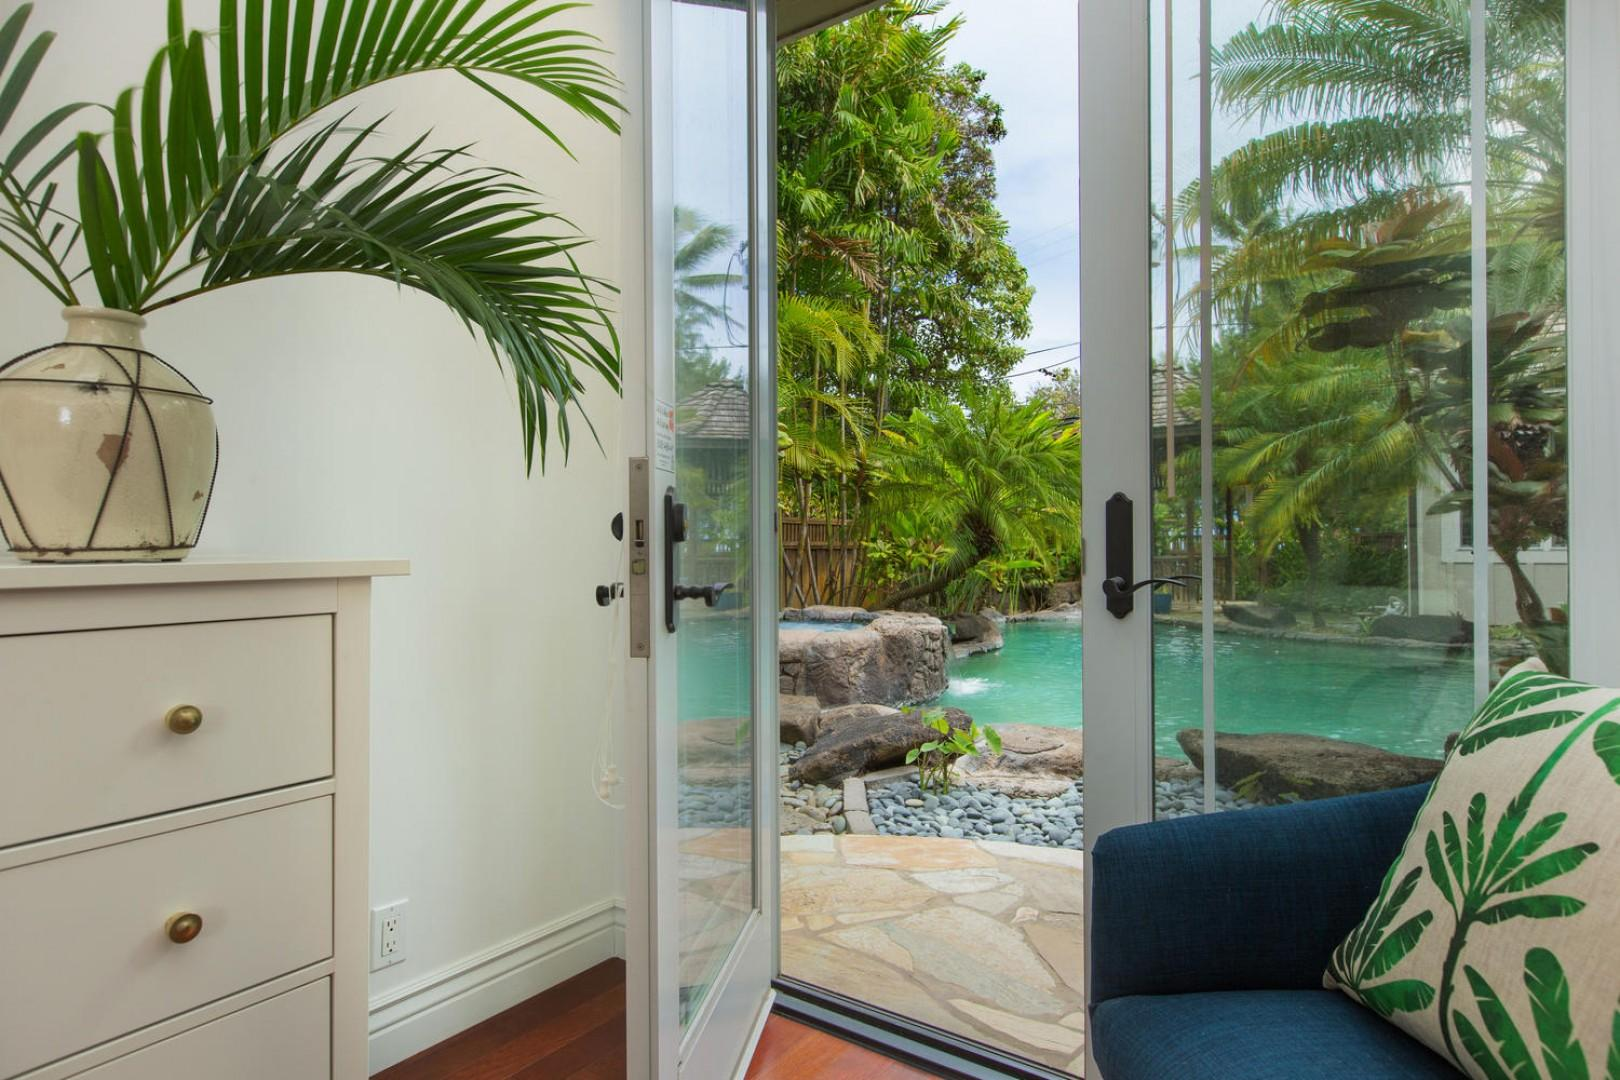 Lanai doors off master bedroom lead to the pool courtyard.